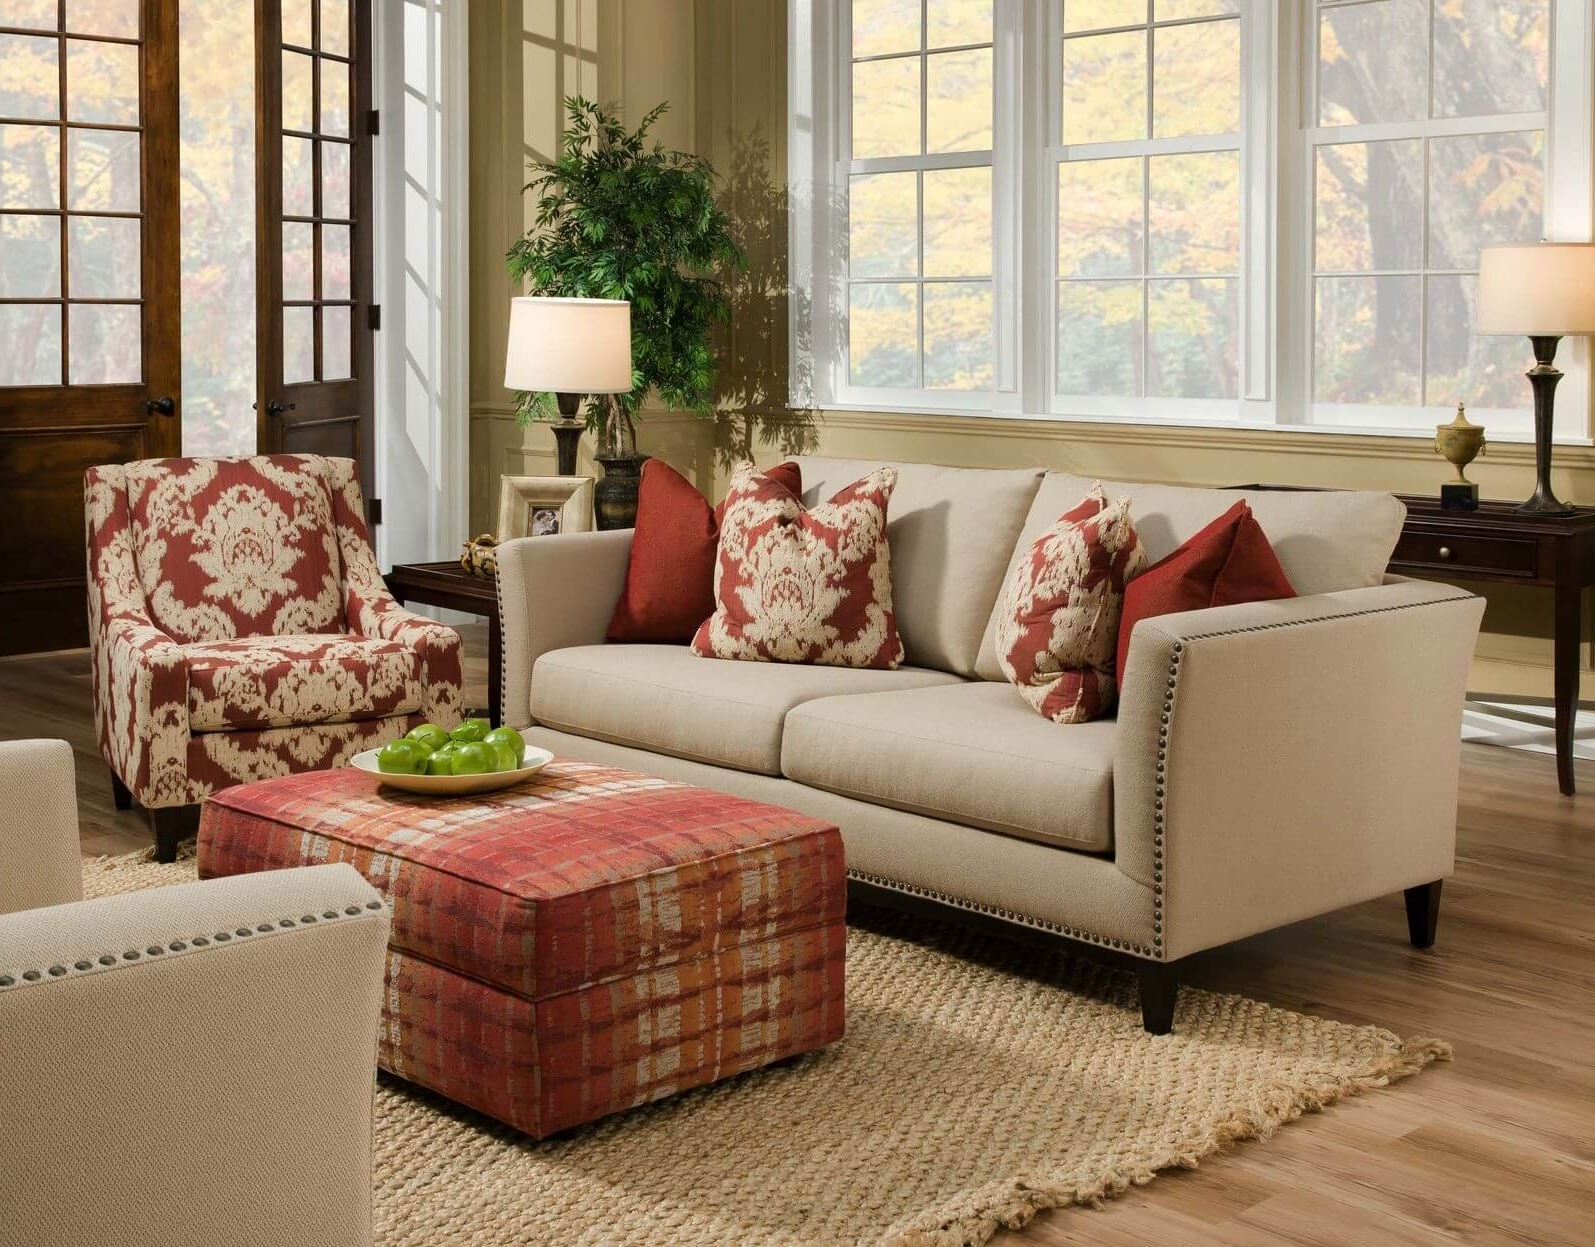 Current Beige Sofa Decor Ideas — Radionigerialagos Within Colorful Sofas And Chairs (View 5 of 15)